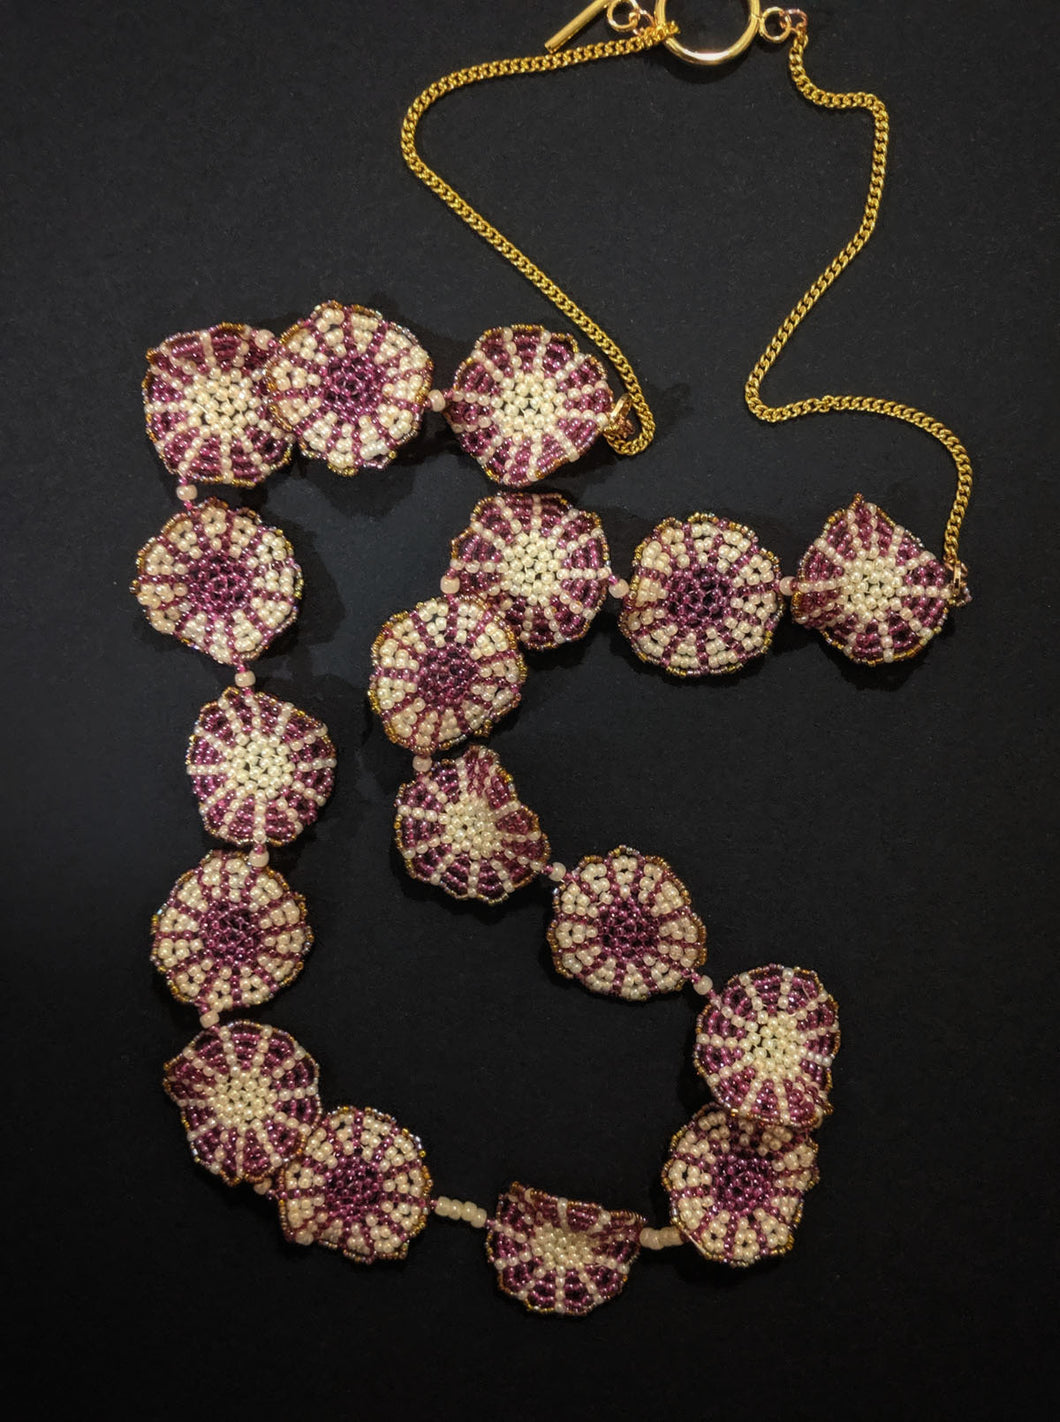 Handmade Beaded Necklace in Magenta & Cream Single Strand Floral Disc